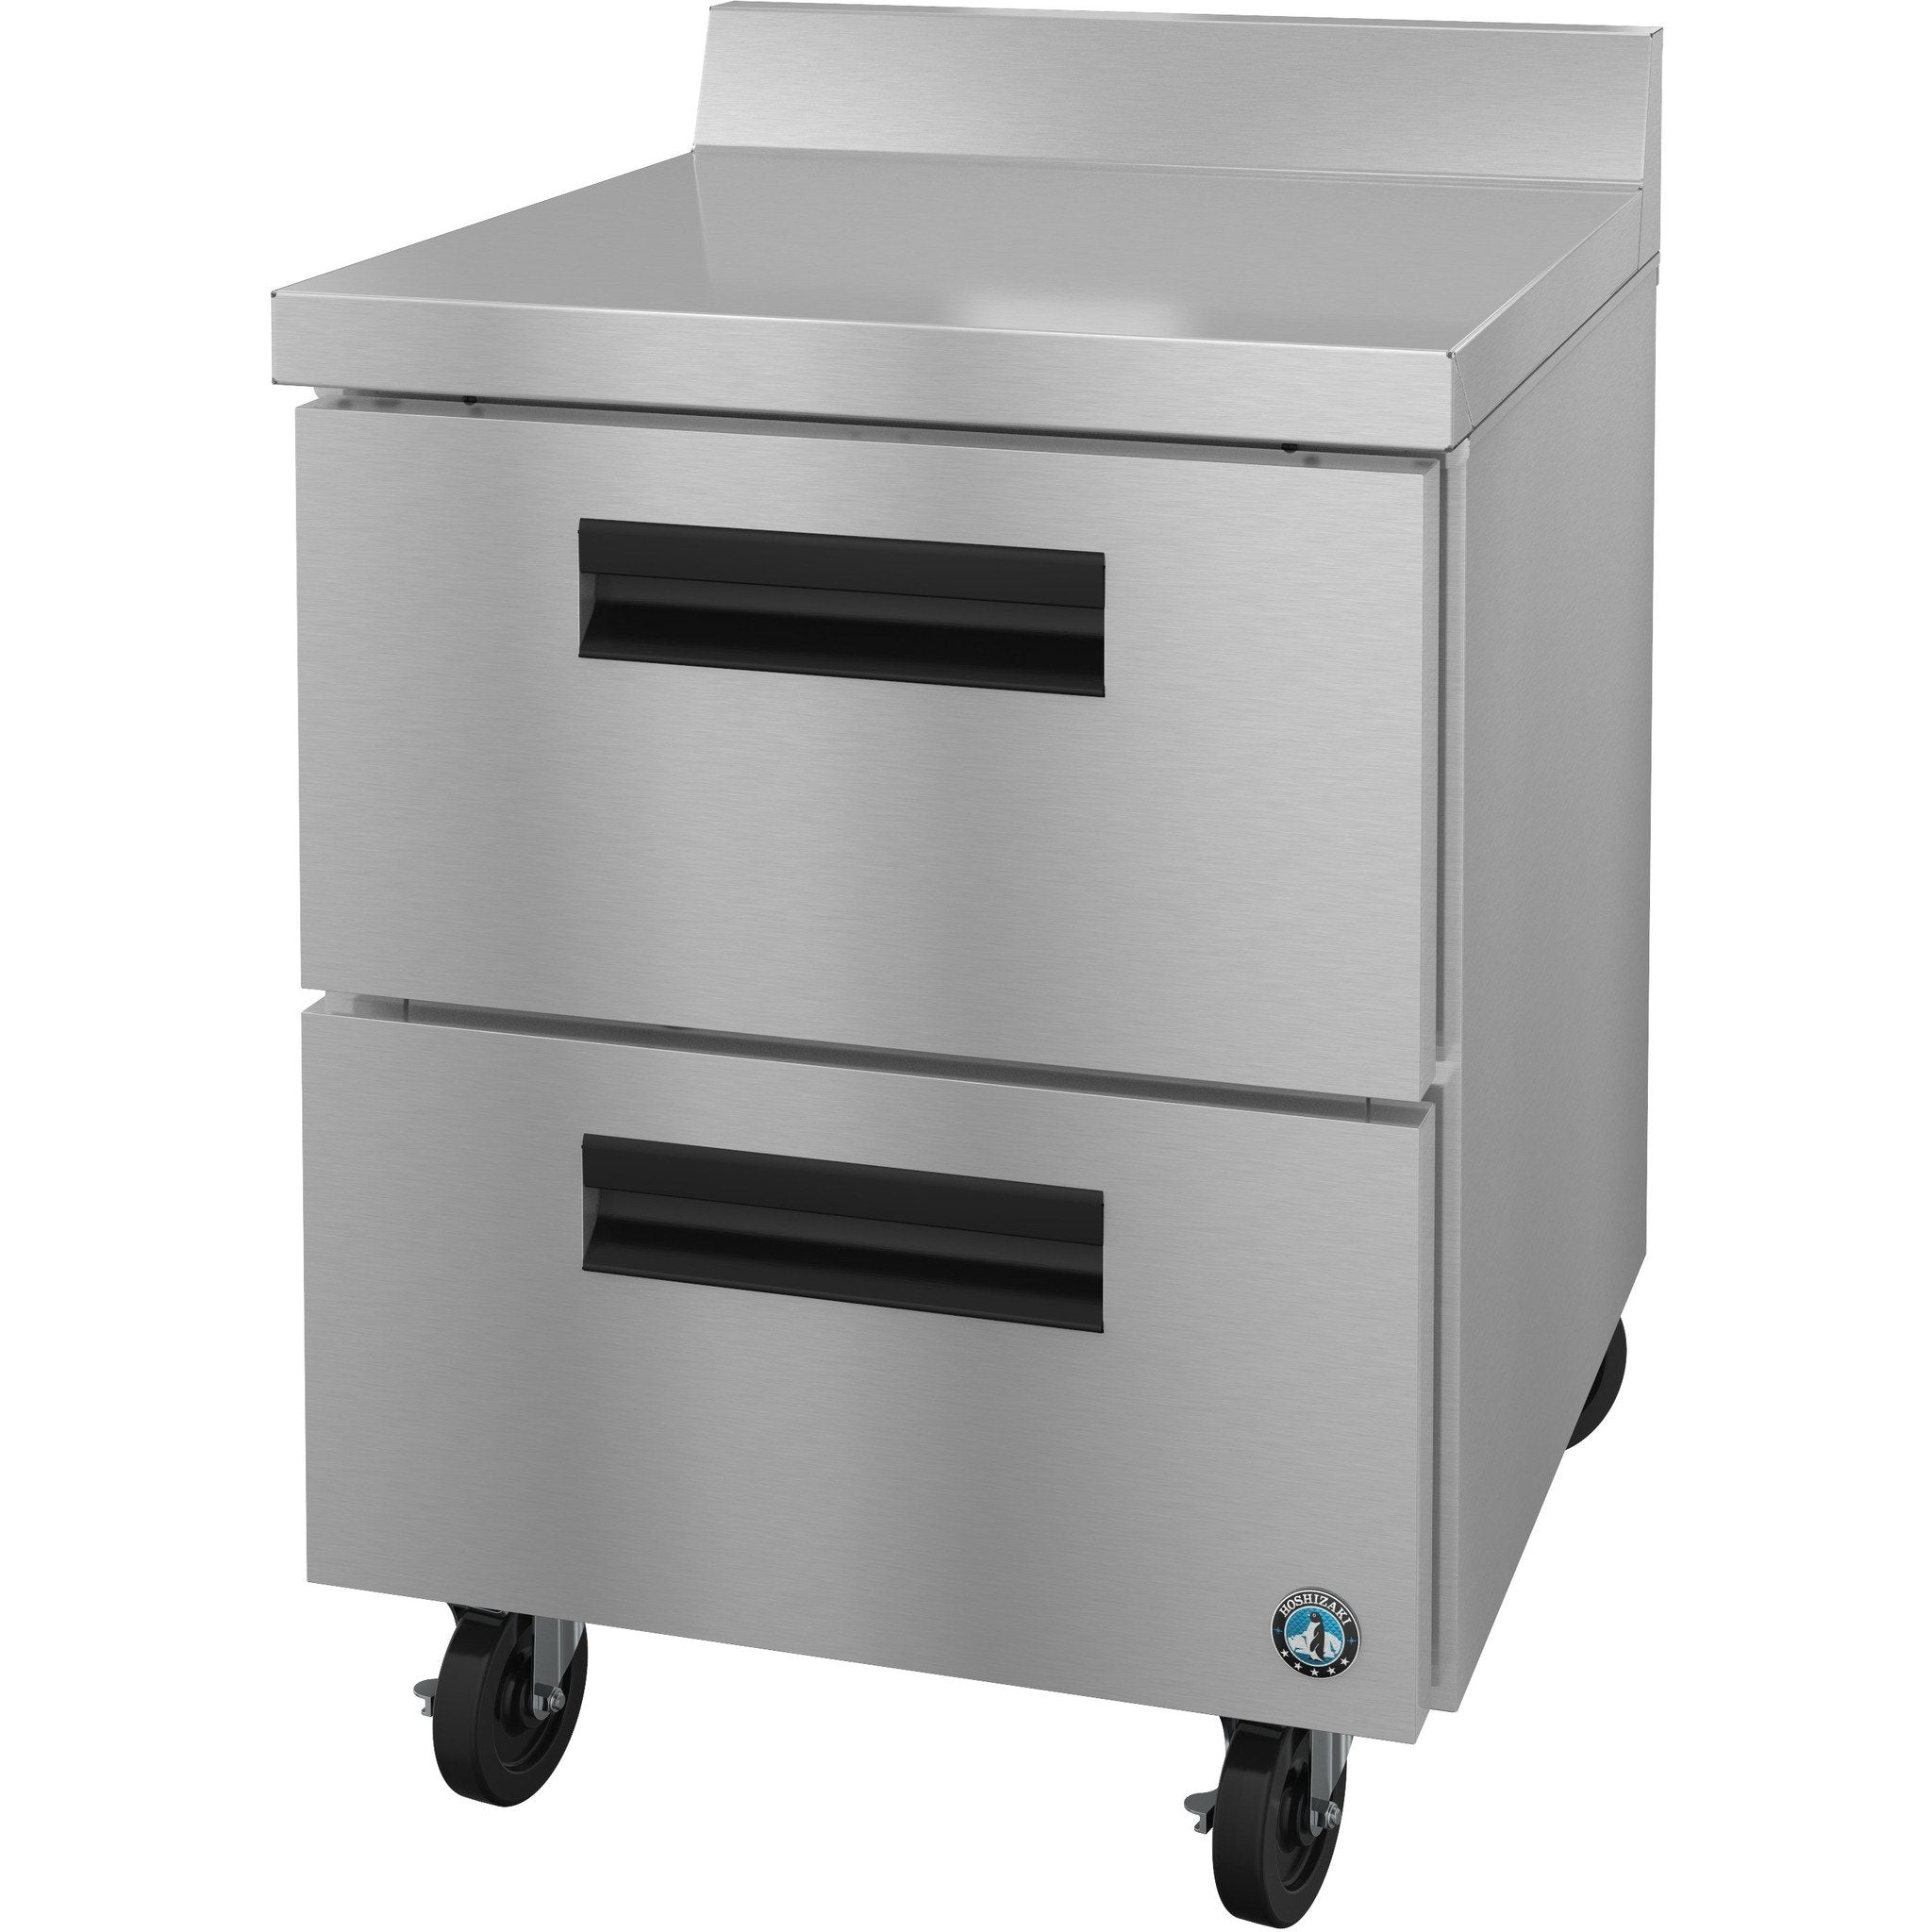 bbq guys bbqguys refrigerator single com series stainless steel access x inch drawer sonoma